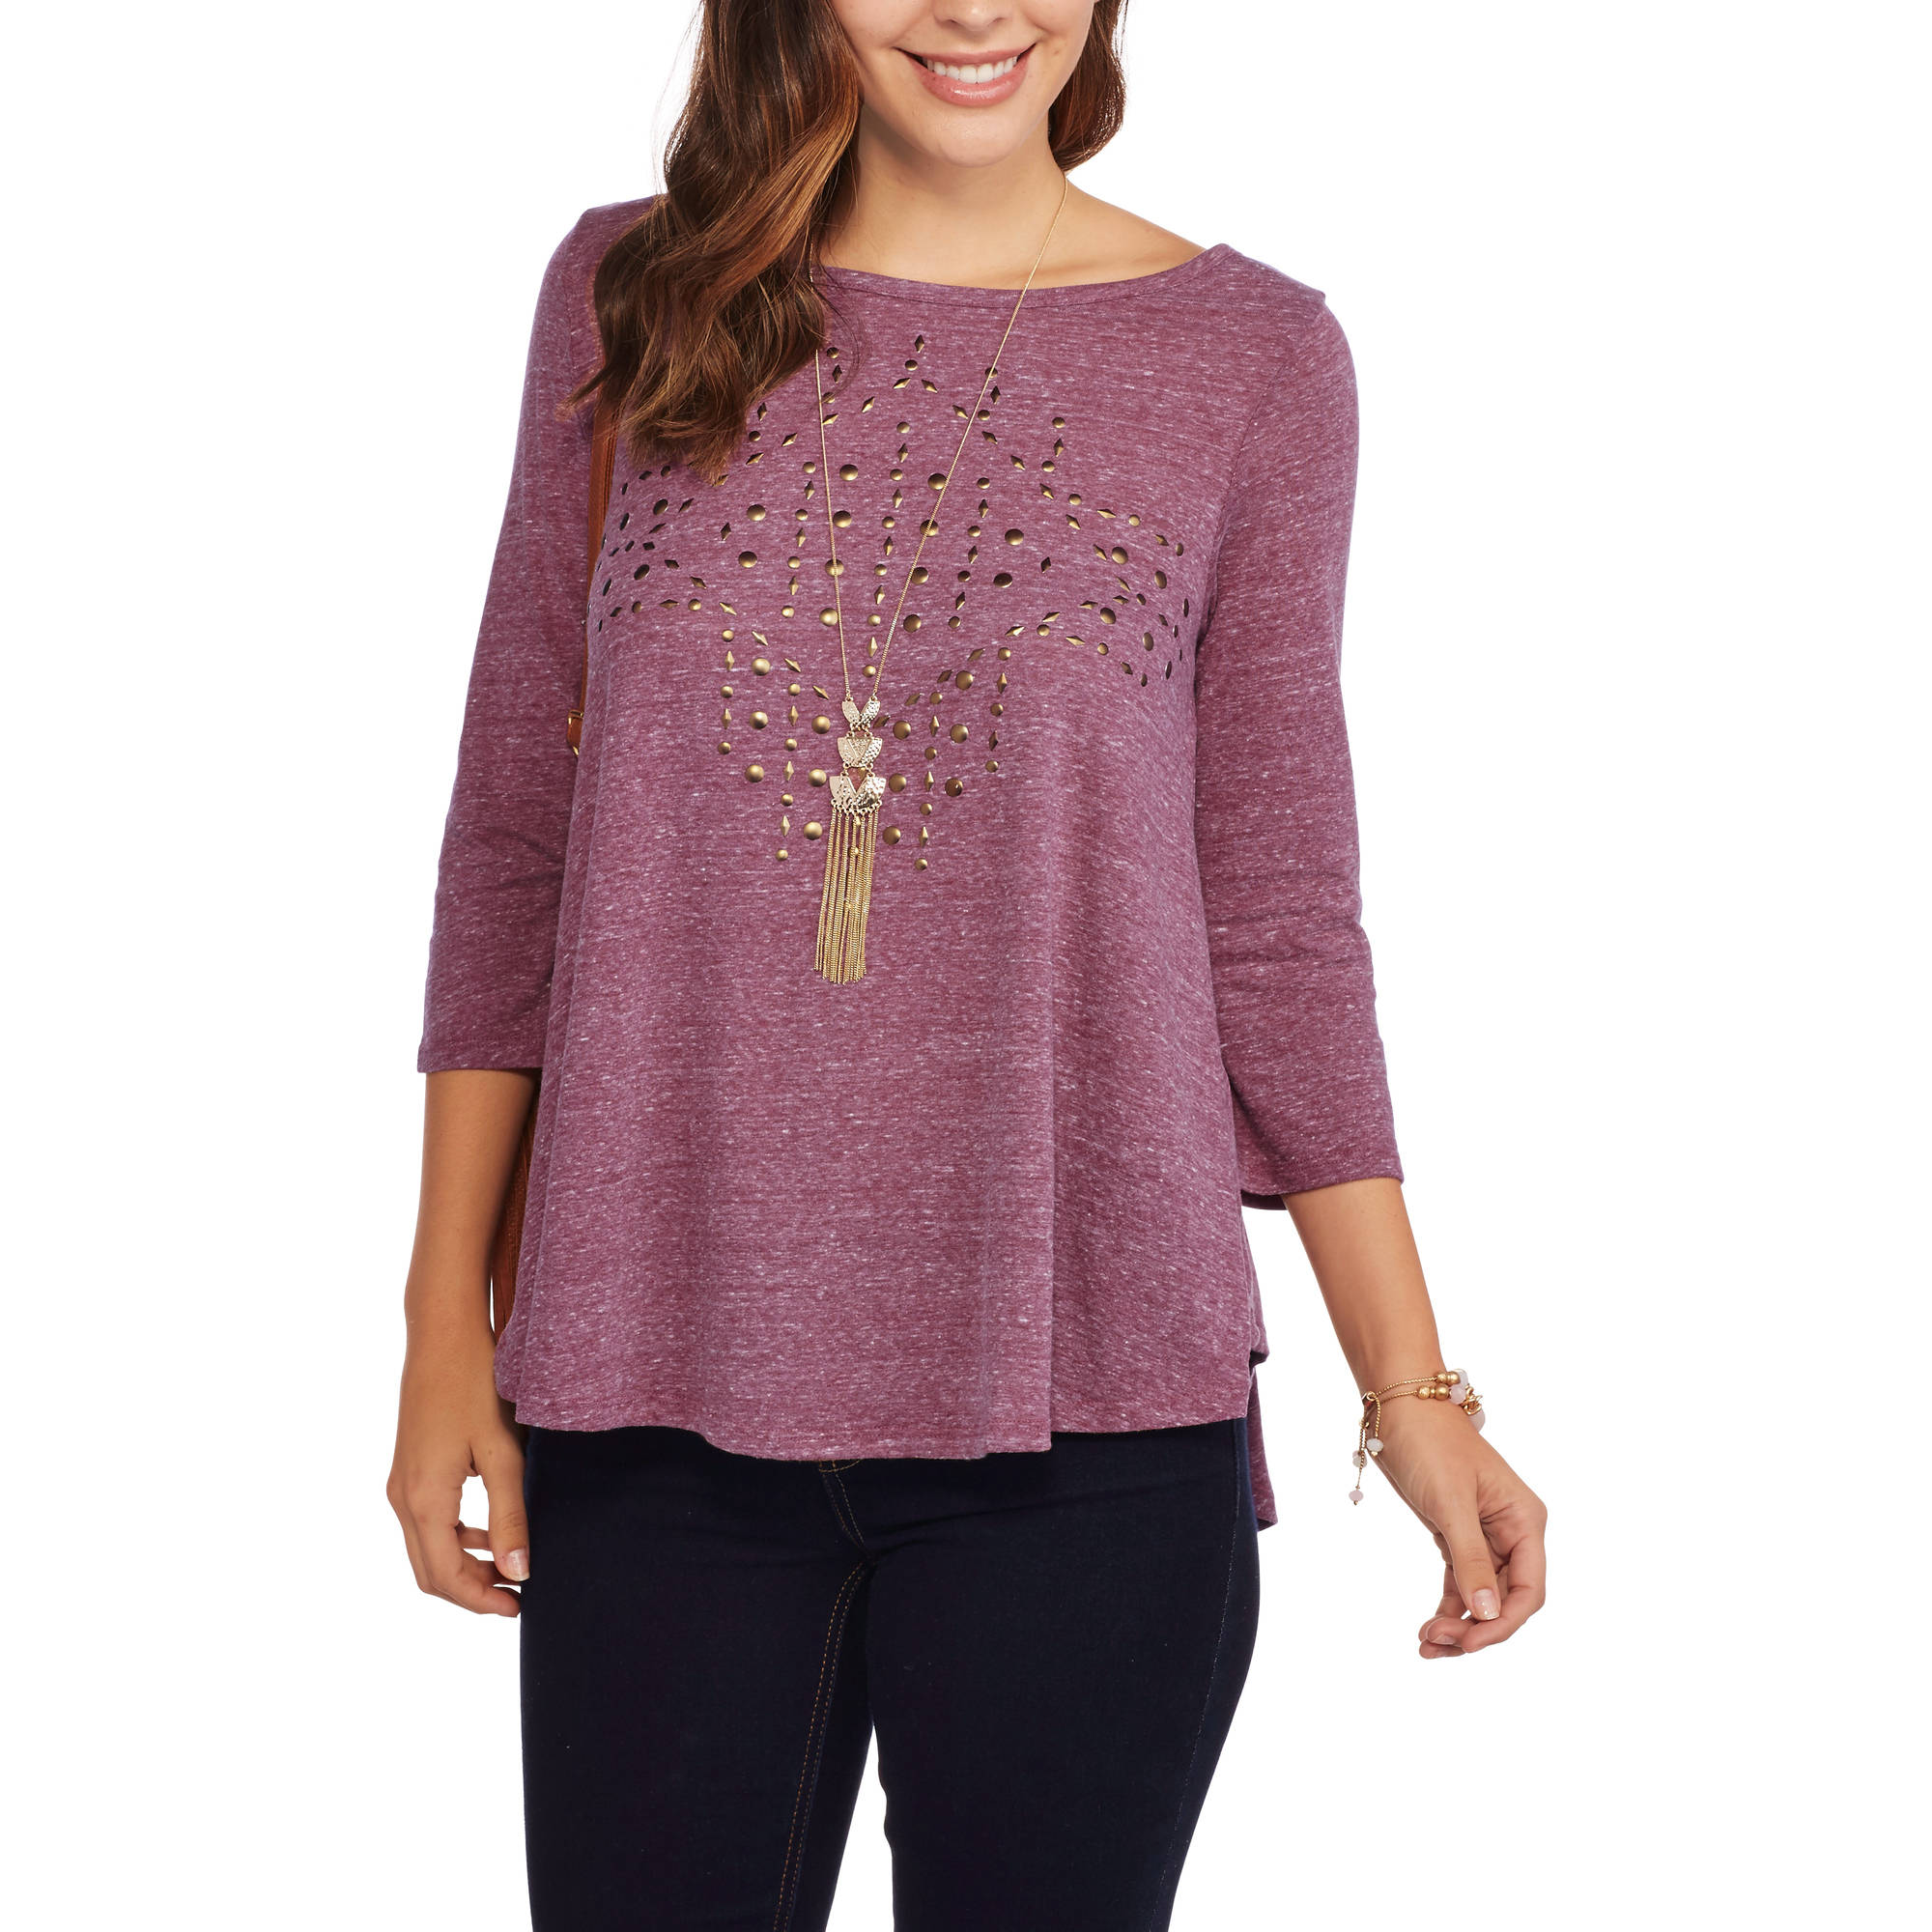 French Laundry Women's Embellished Swing Top